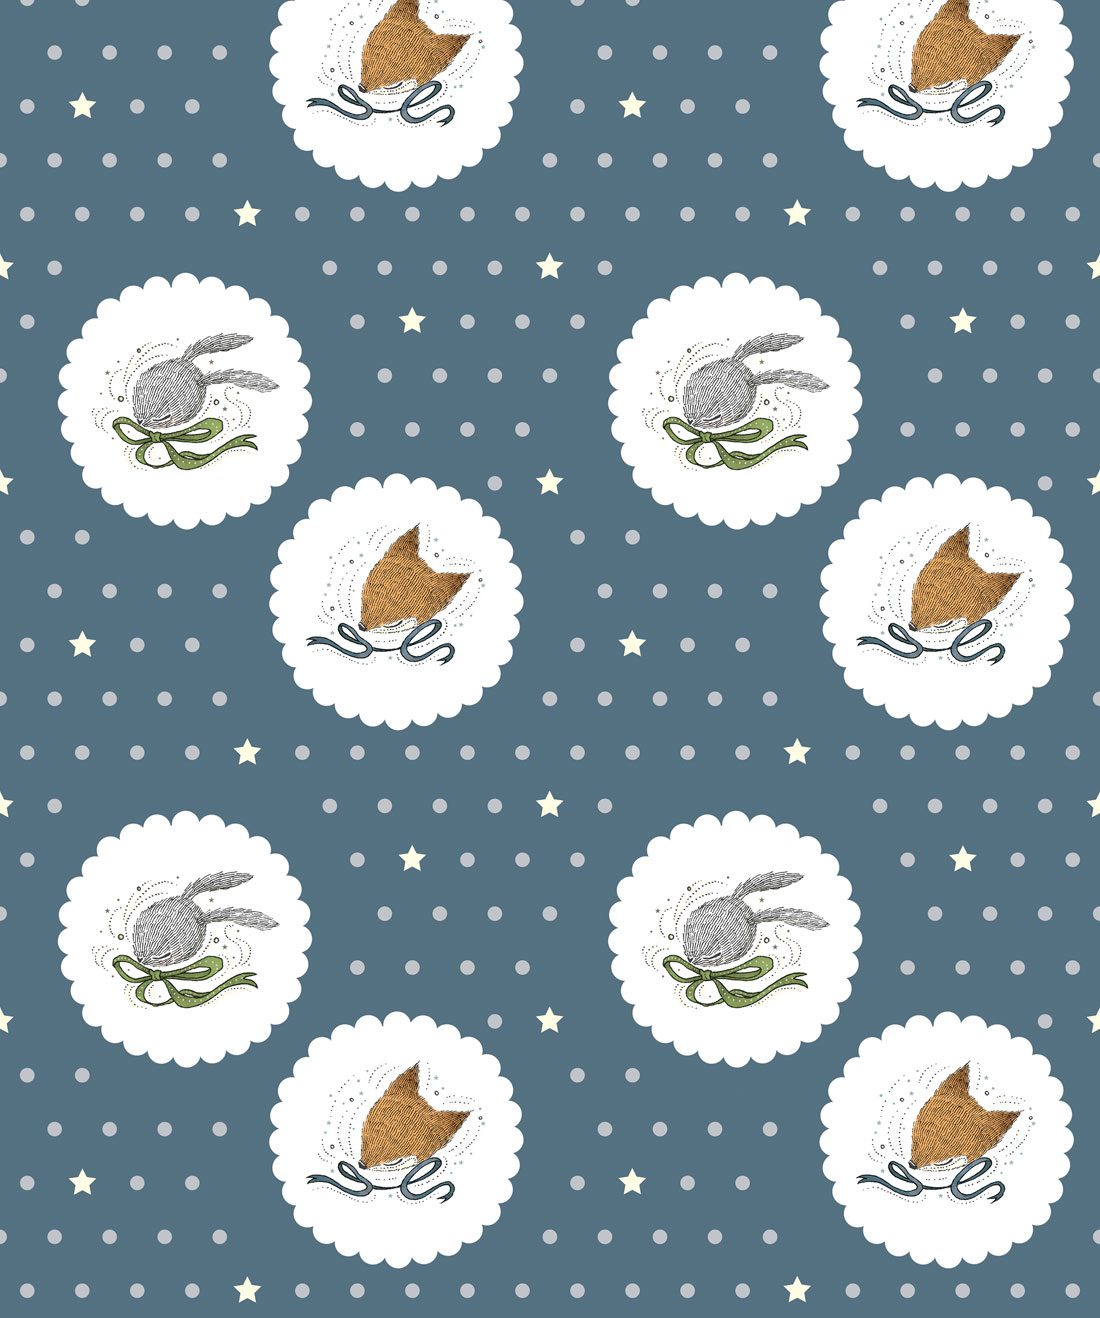 Fox & Rabbit Wallpaper